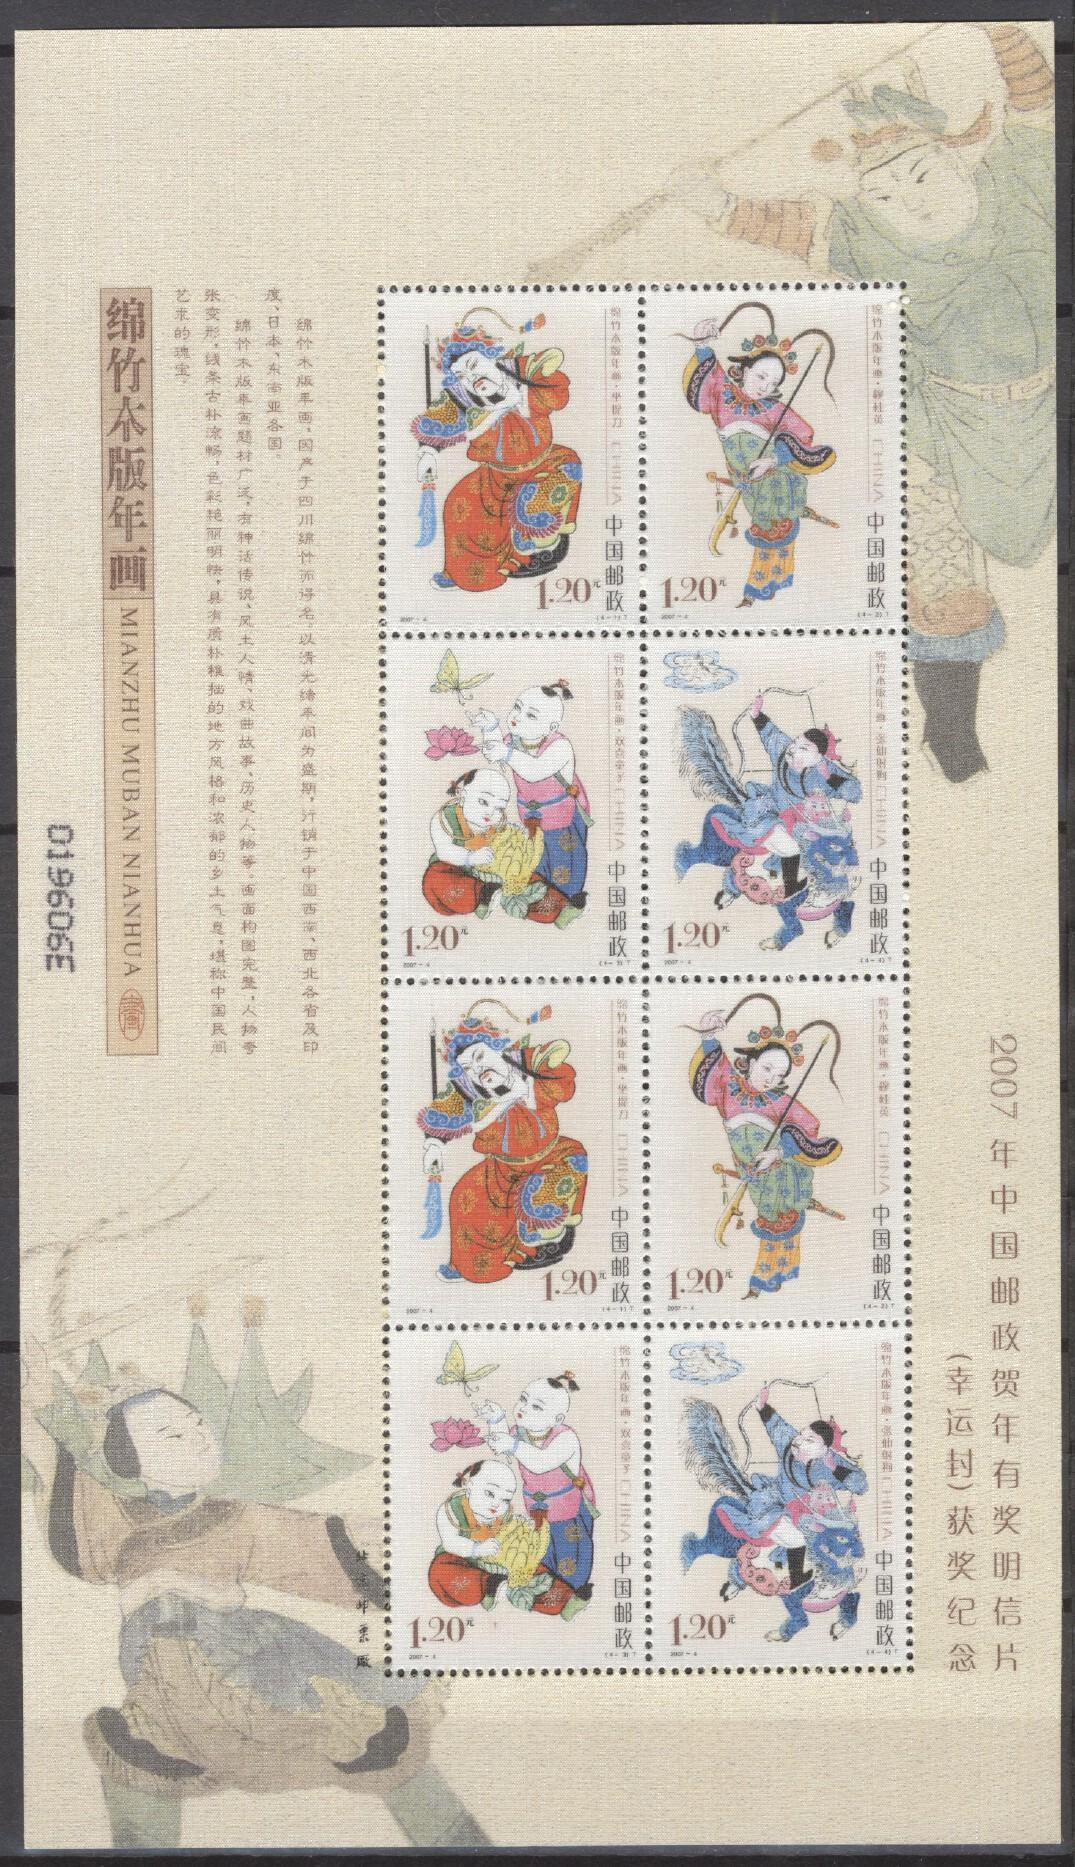 Stamps with Special shapes, Culture, Clothing / Fashion from China P.R. (image for product #264617)